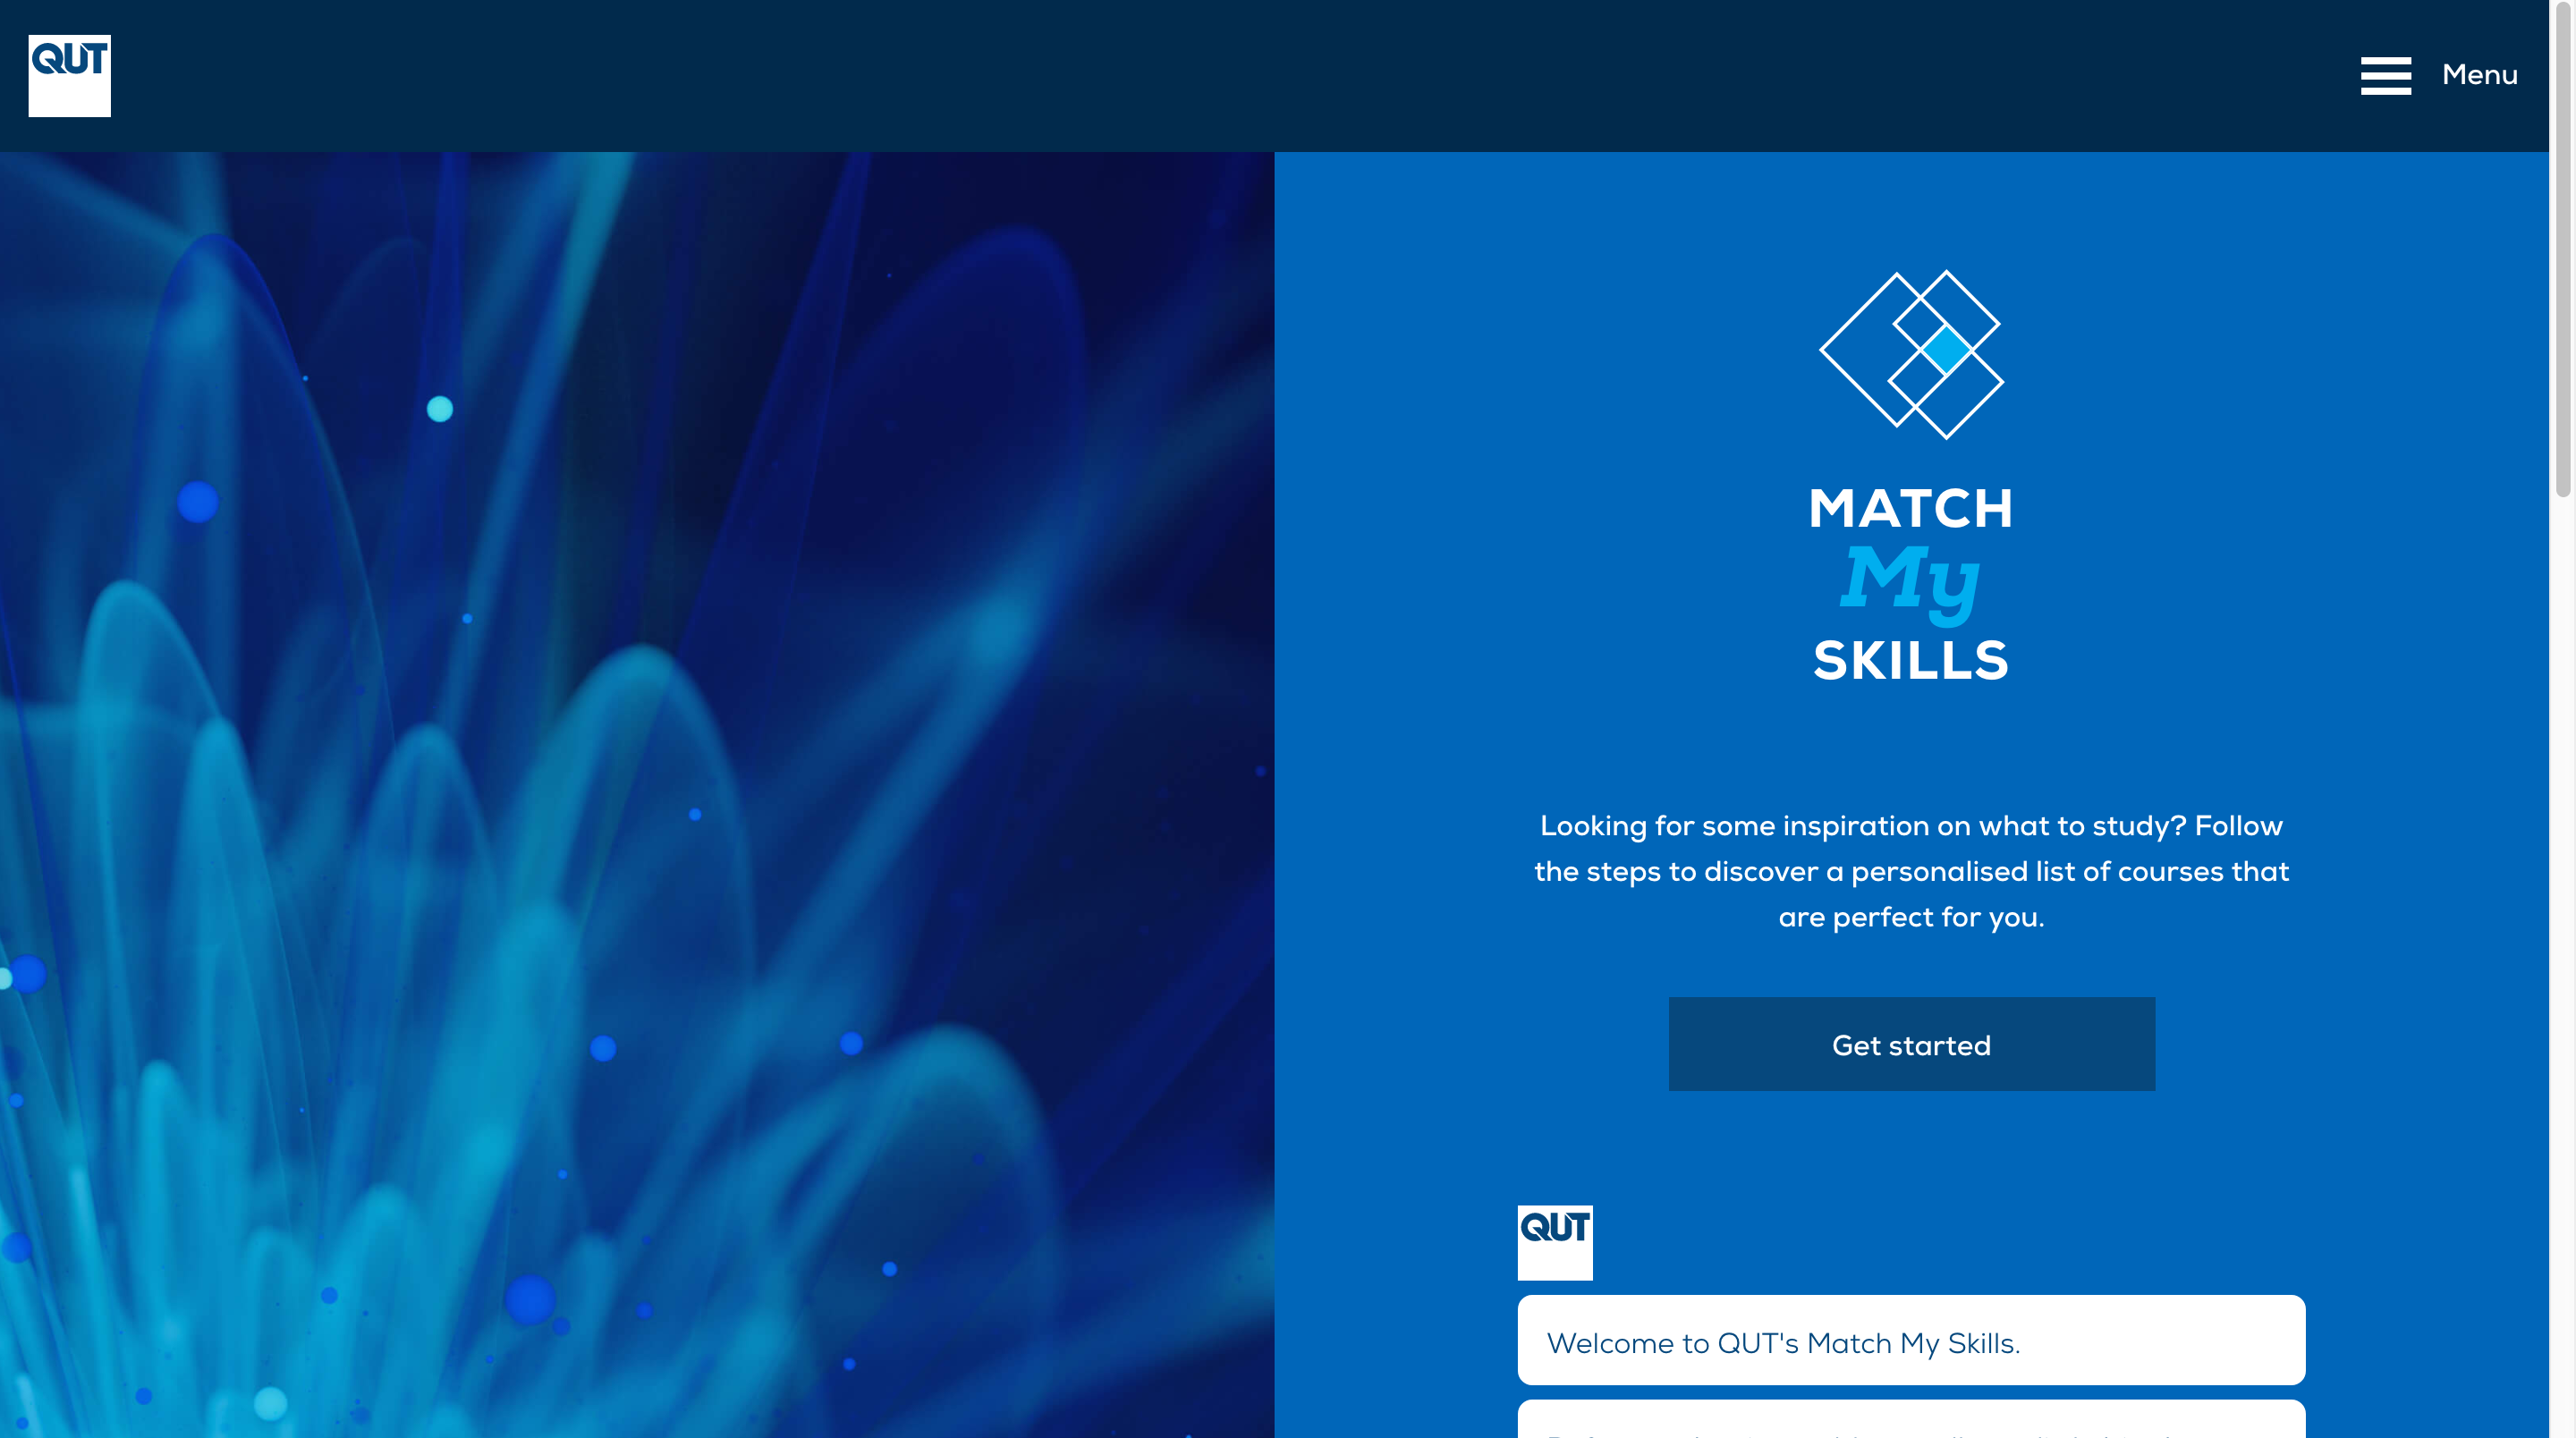 QUT Match My Skills